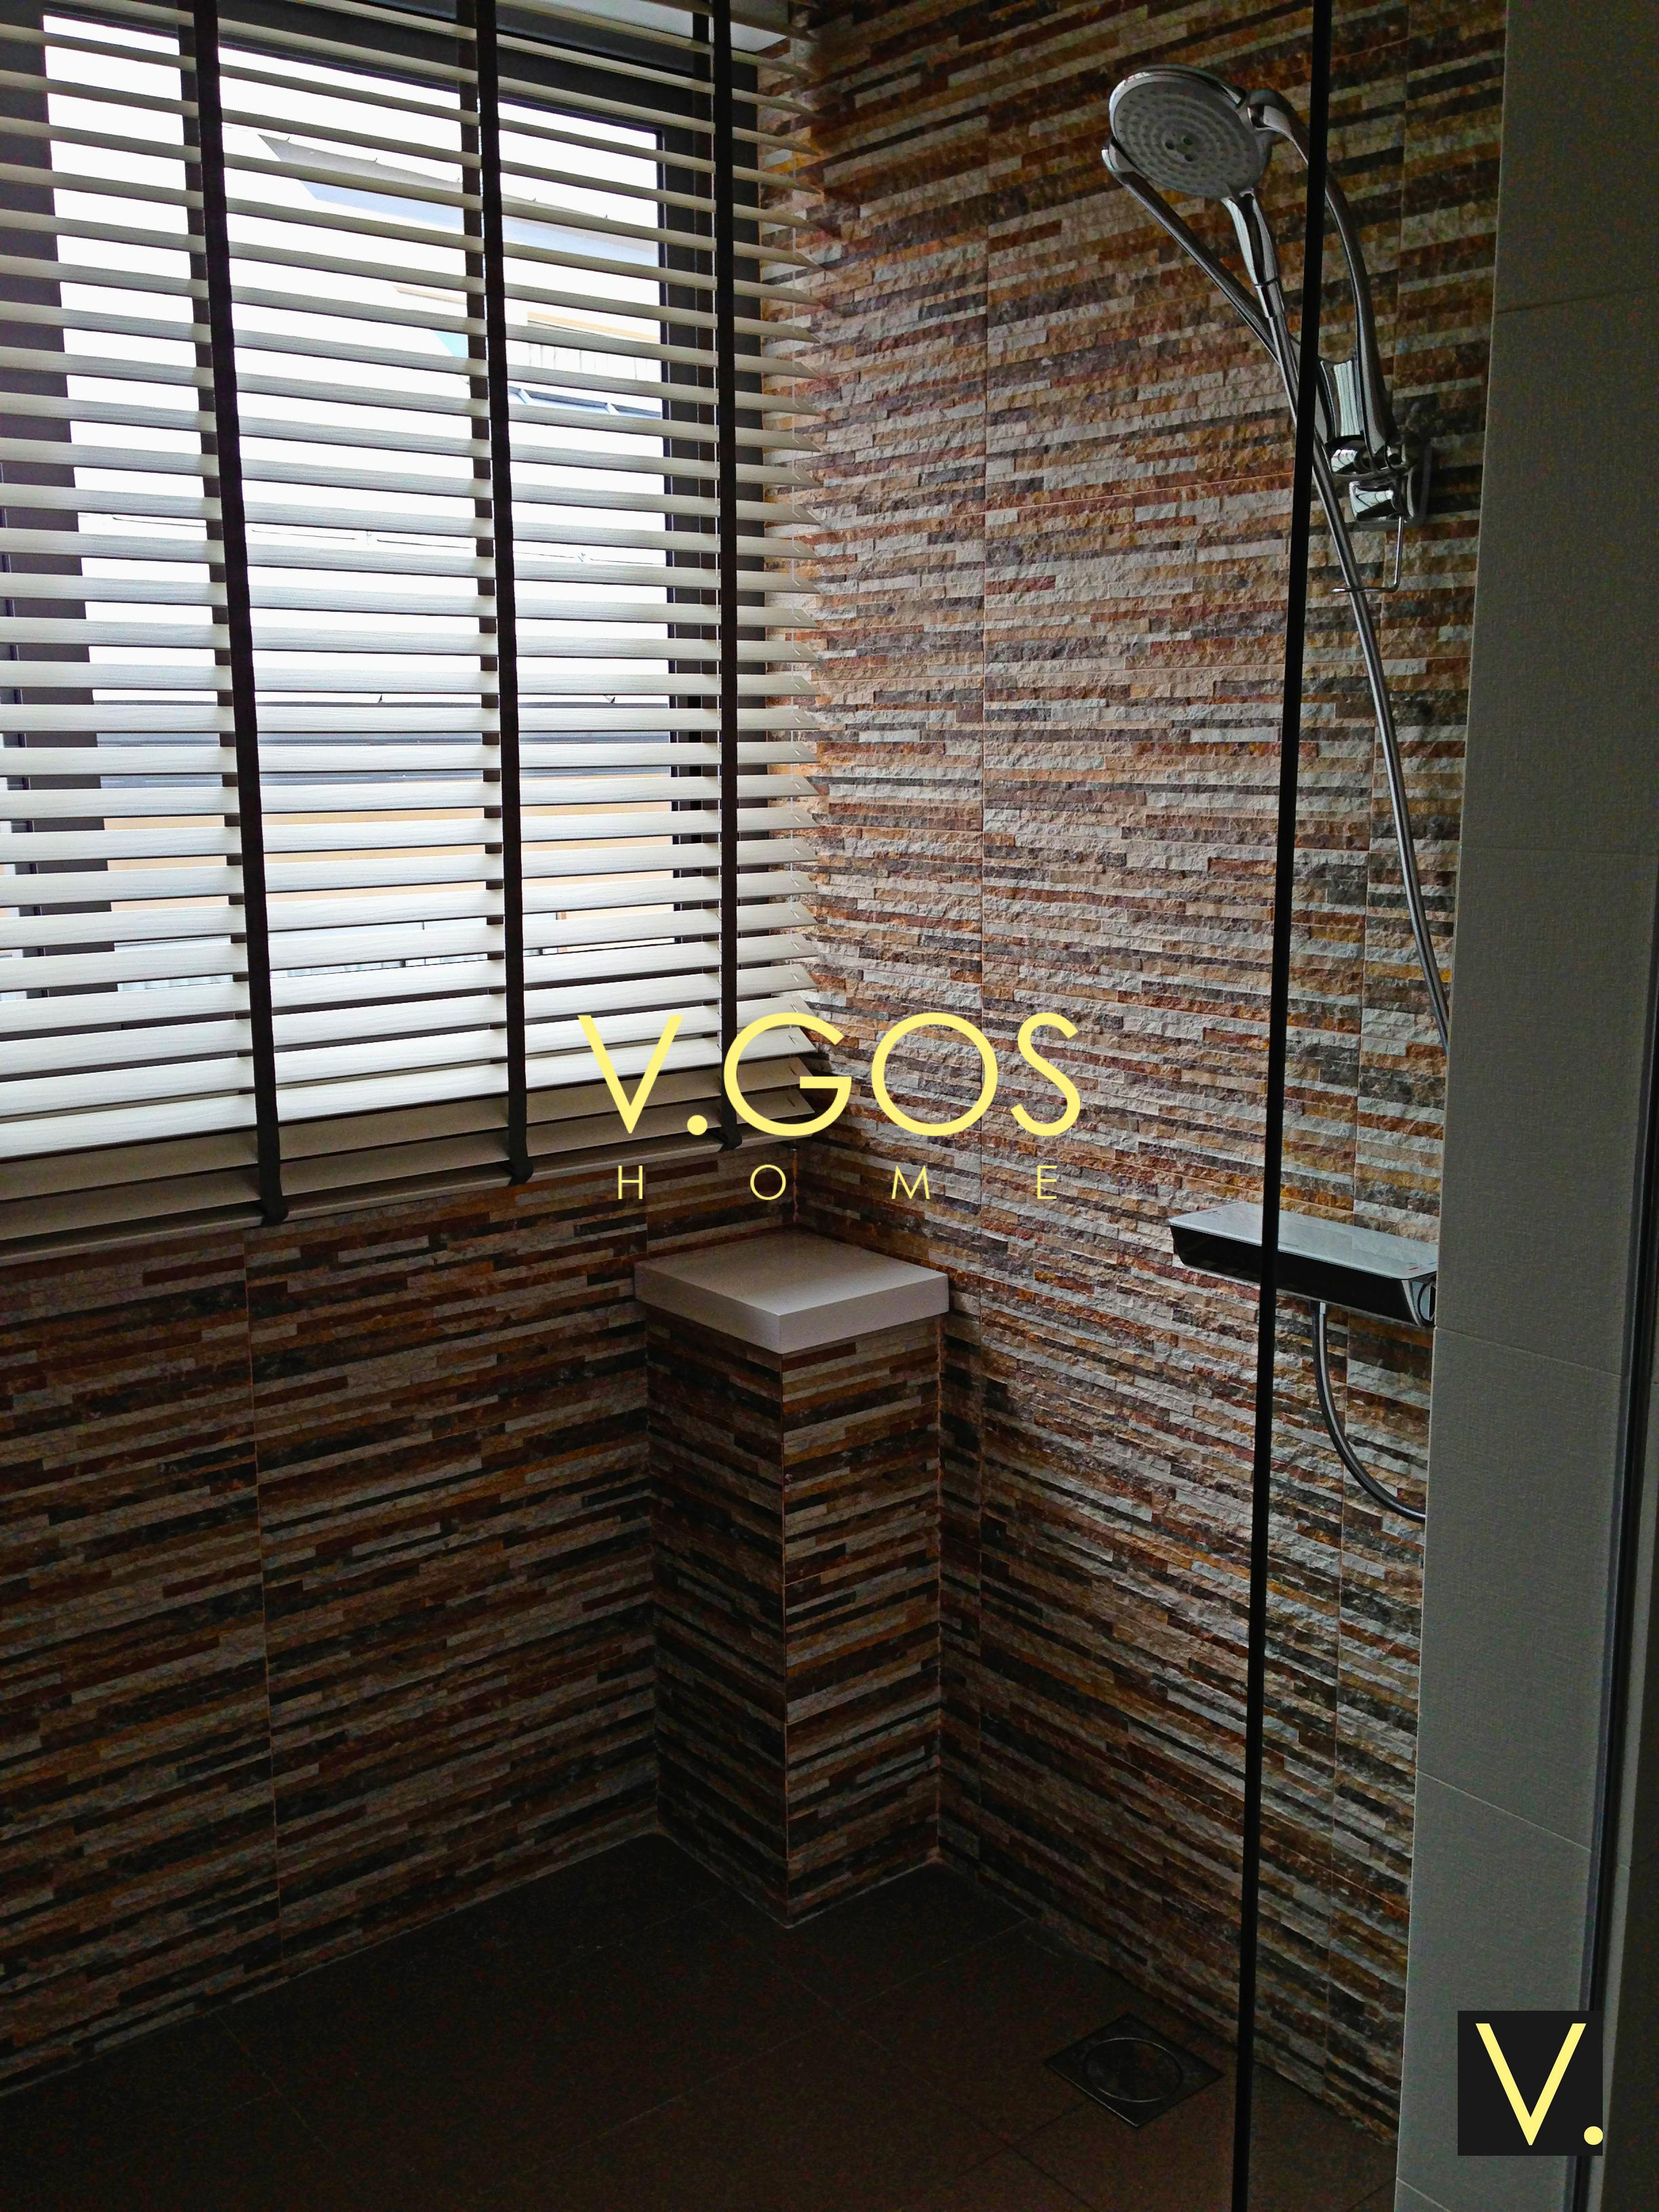 Basewood venetian blind with wooven tape